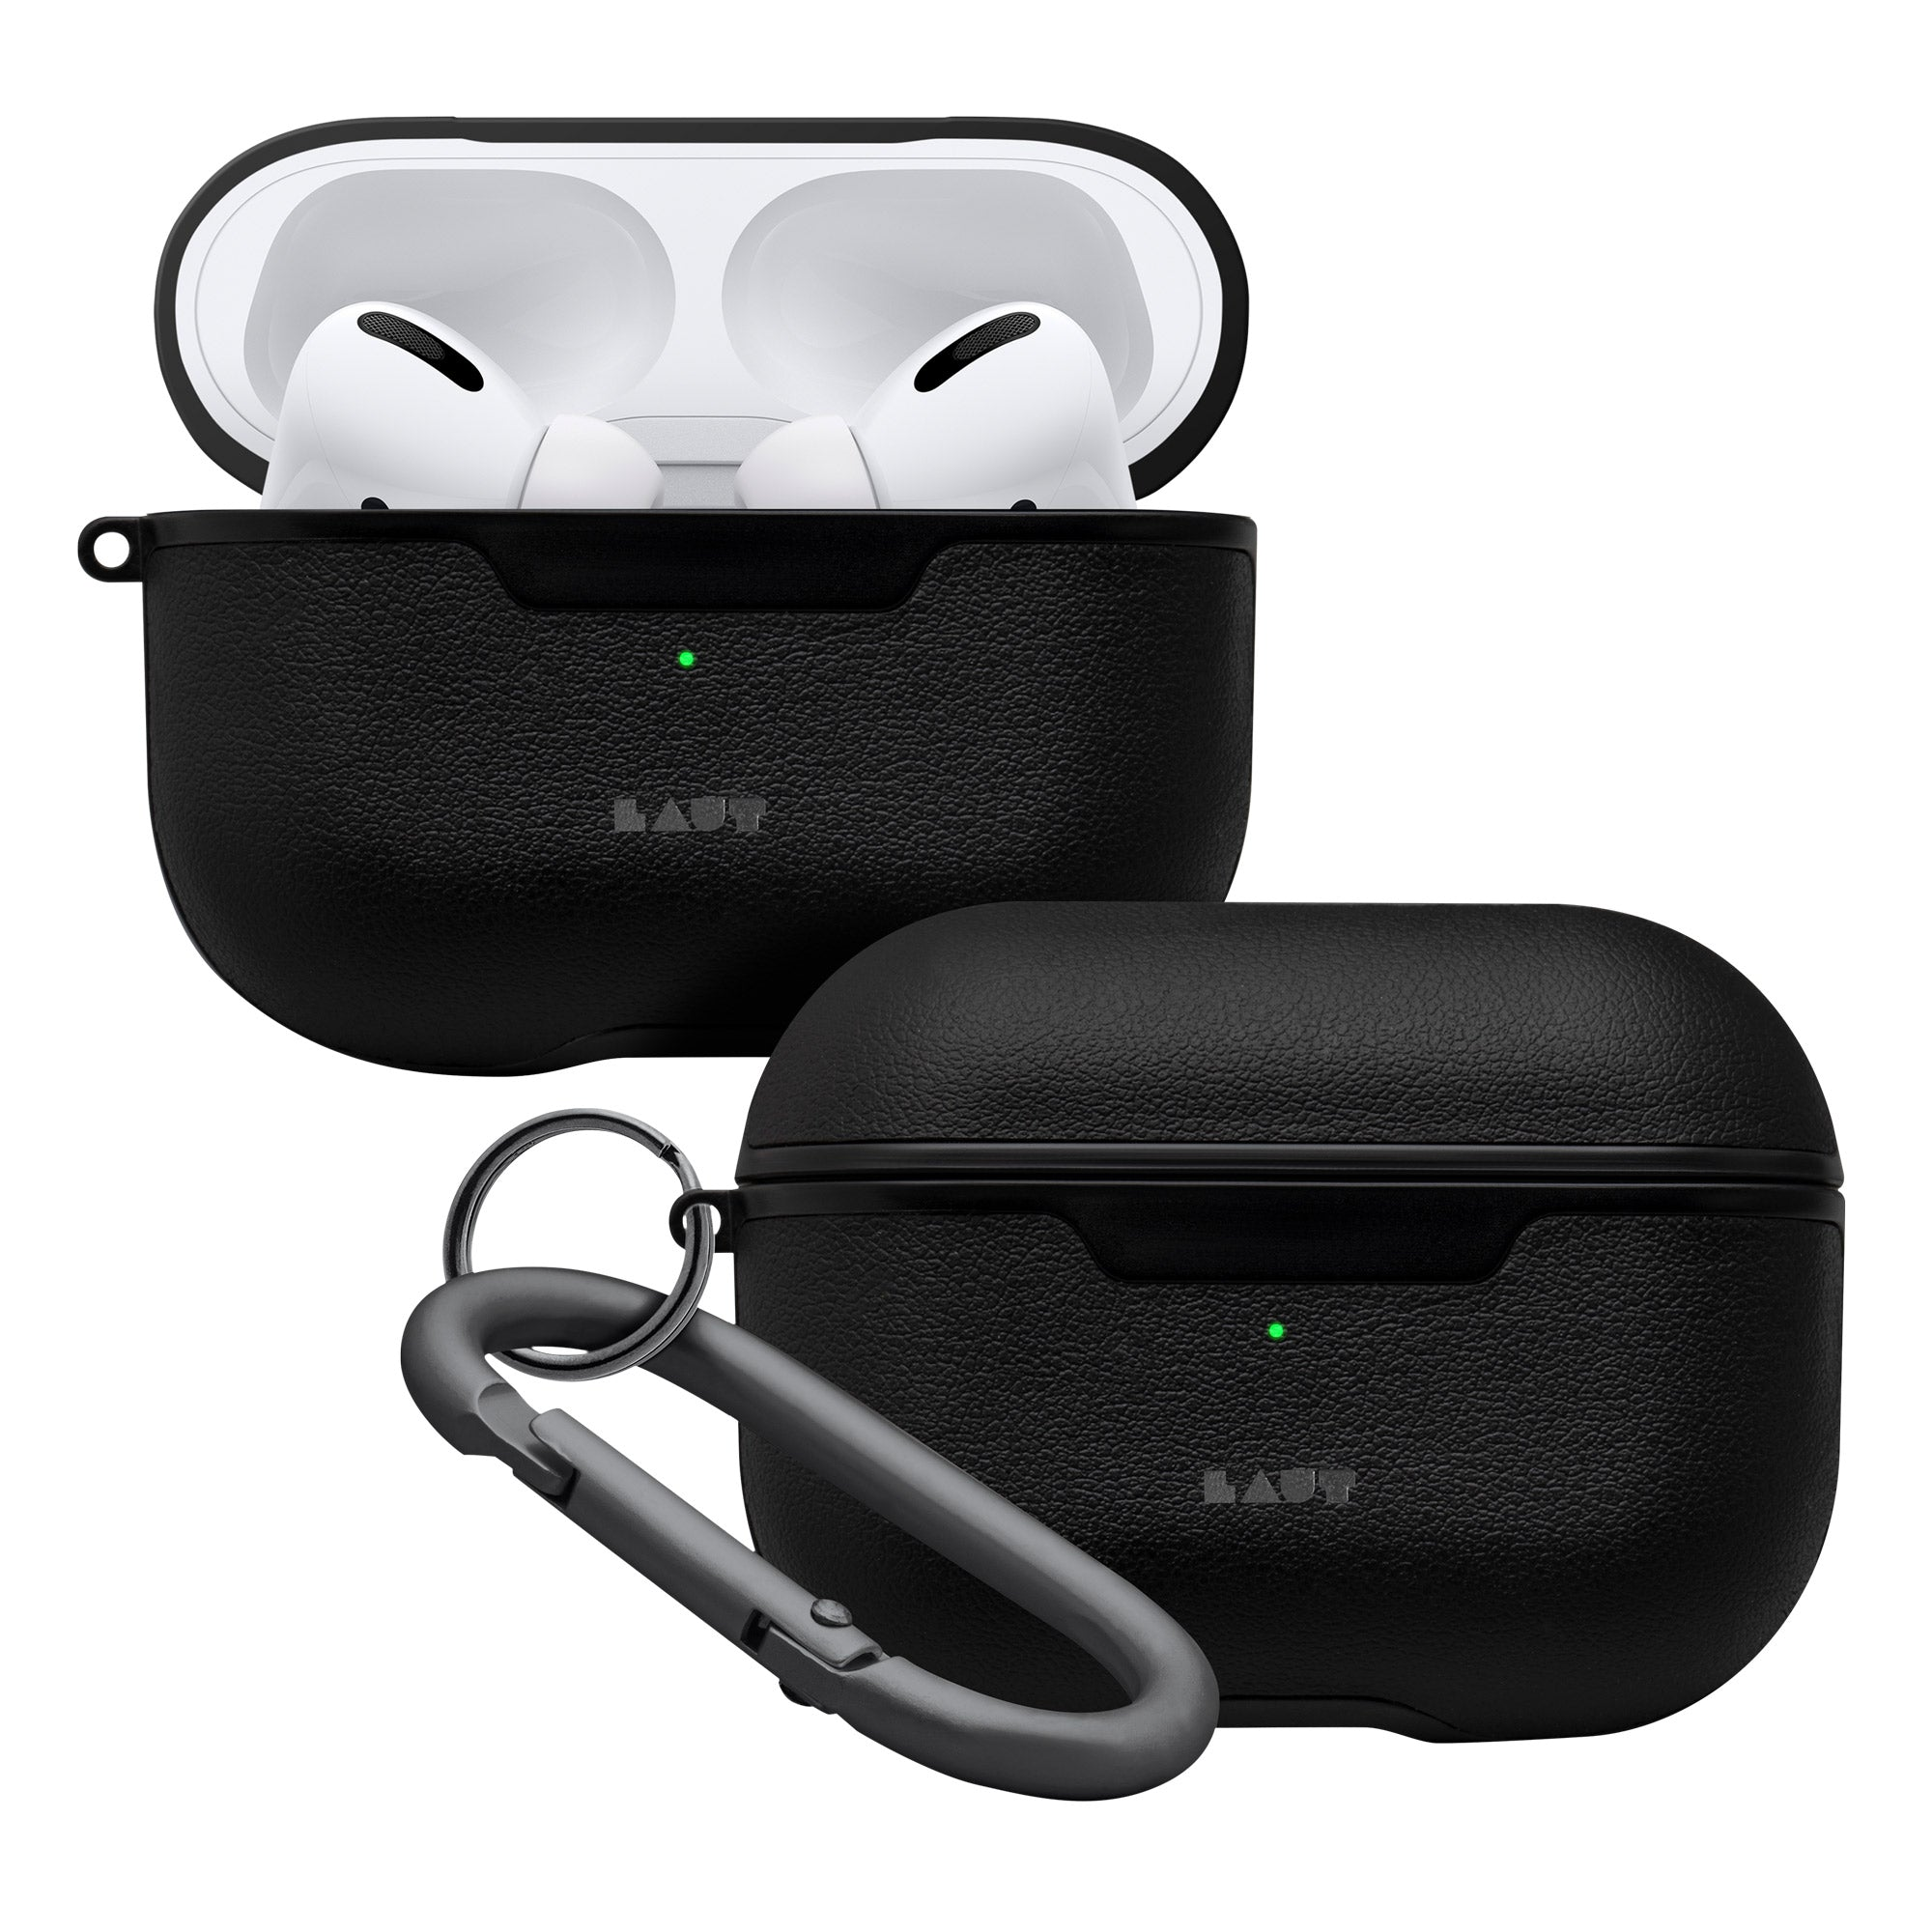 LAUT-Oxford for AirPods Pro-Case-AirPods Pro